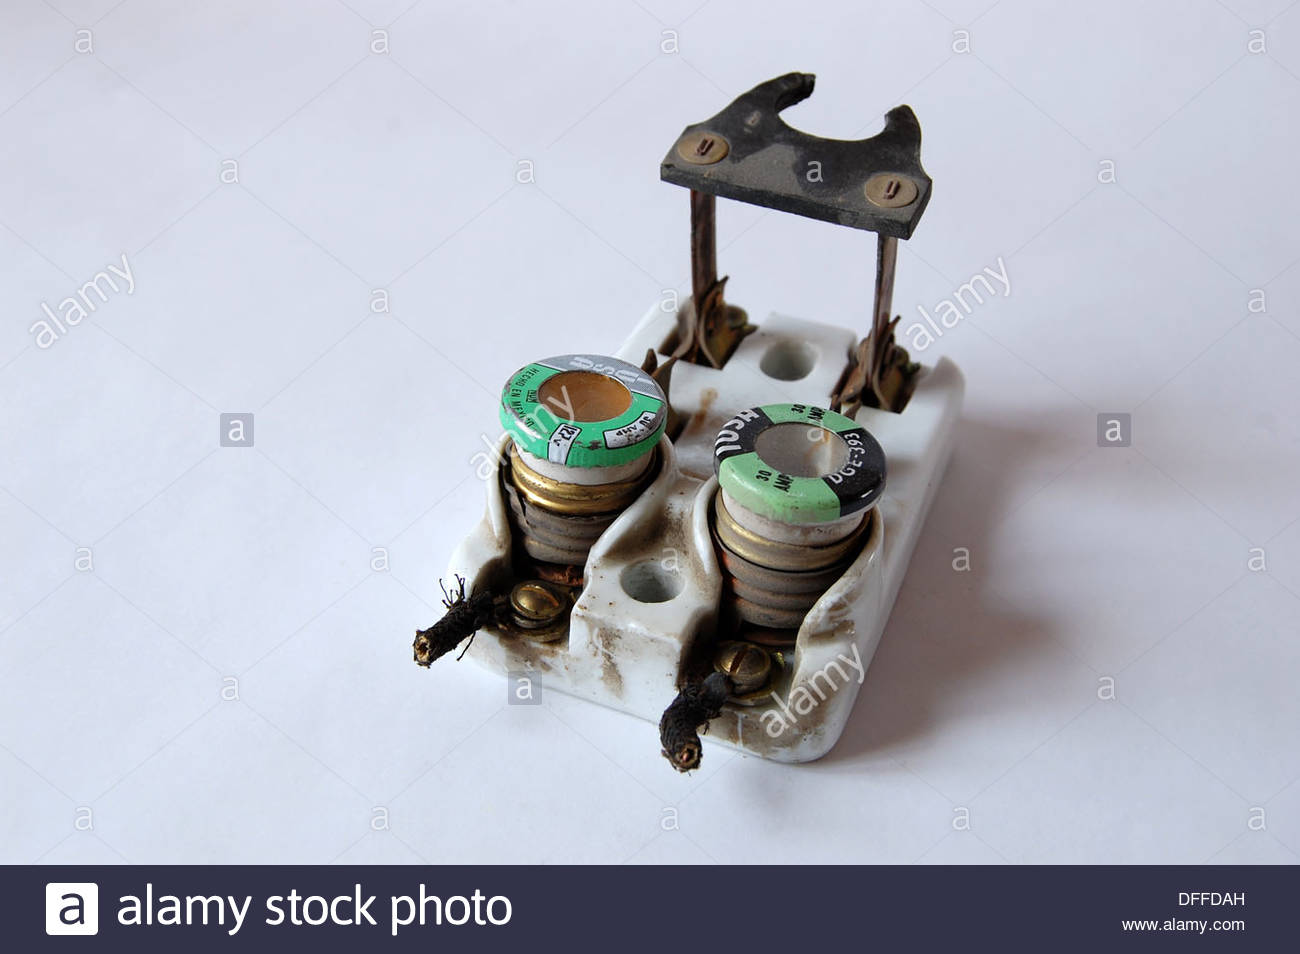 Old Fuses Fuse Box Stock Photos Images 1950s Vintage Ceramic Electrical Circuit Breaker With And Knife Switch Plain Background Natural